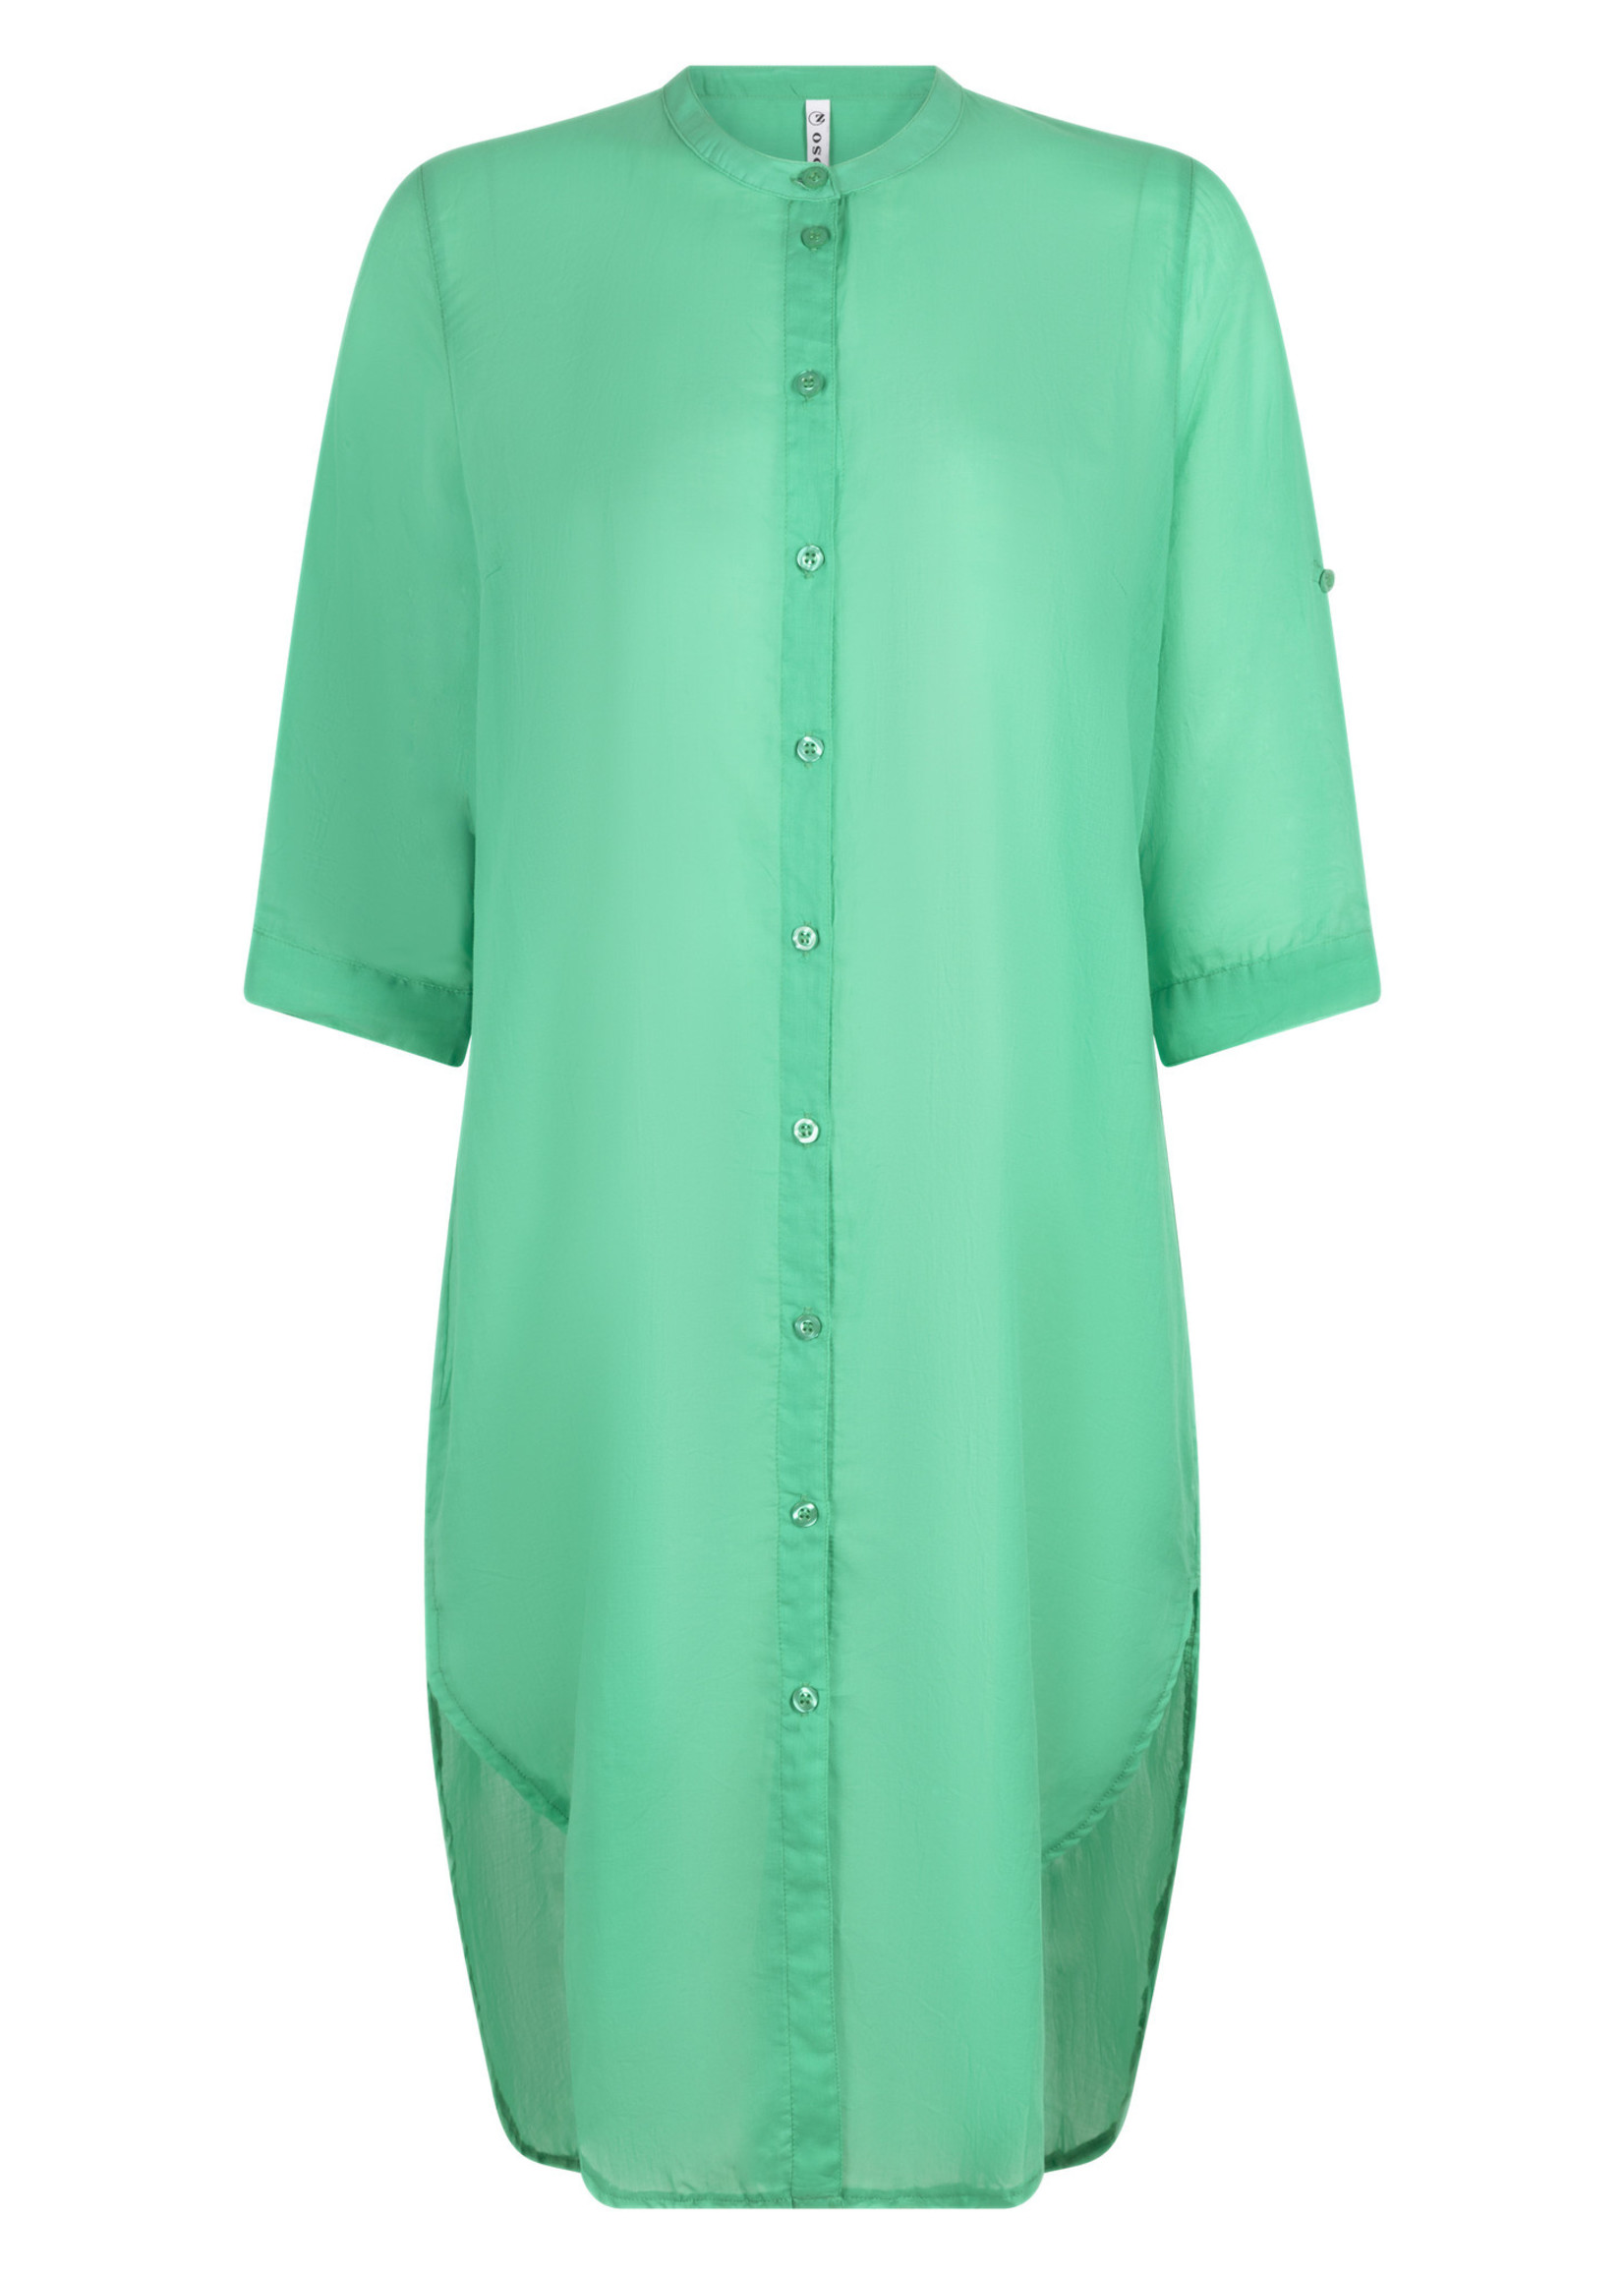 Zoso Cannes Luxury voile blouse